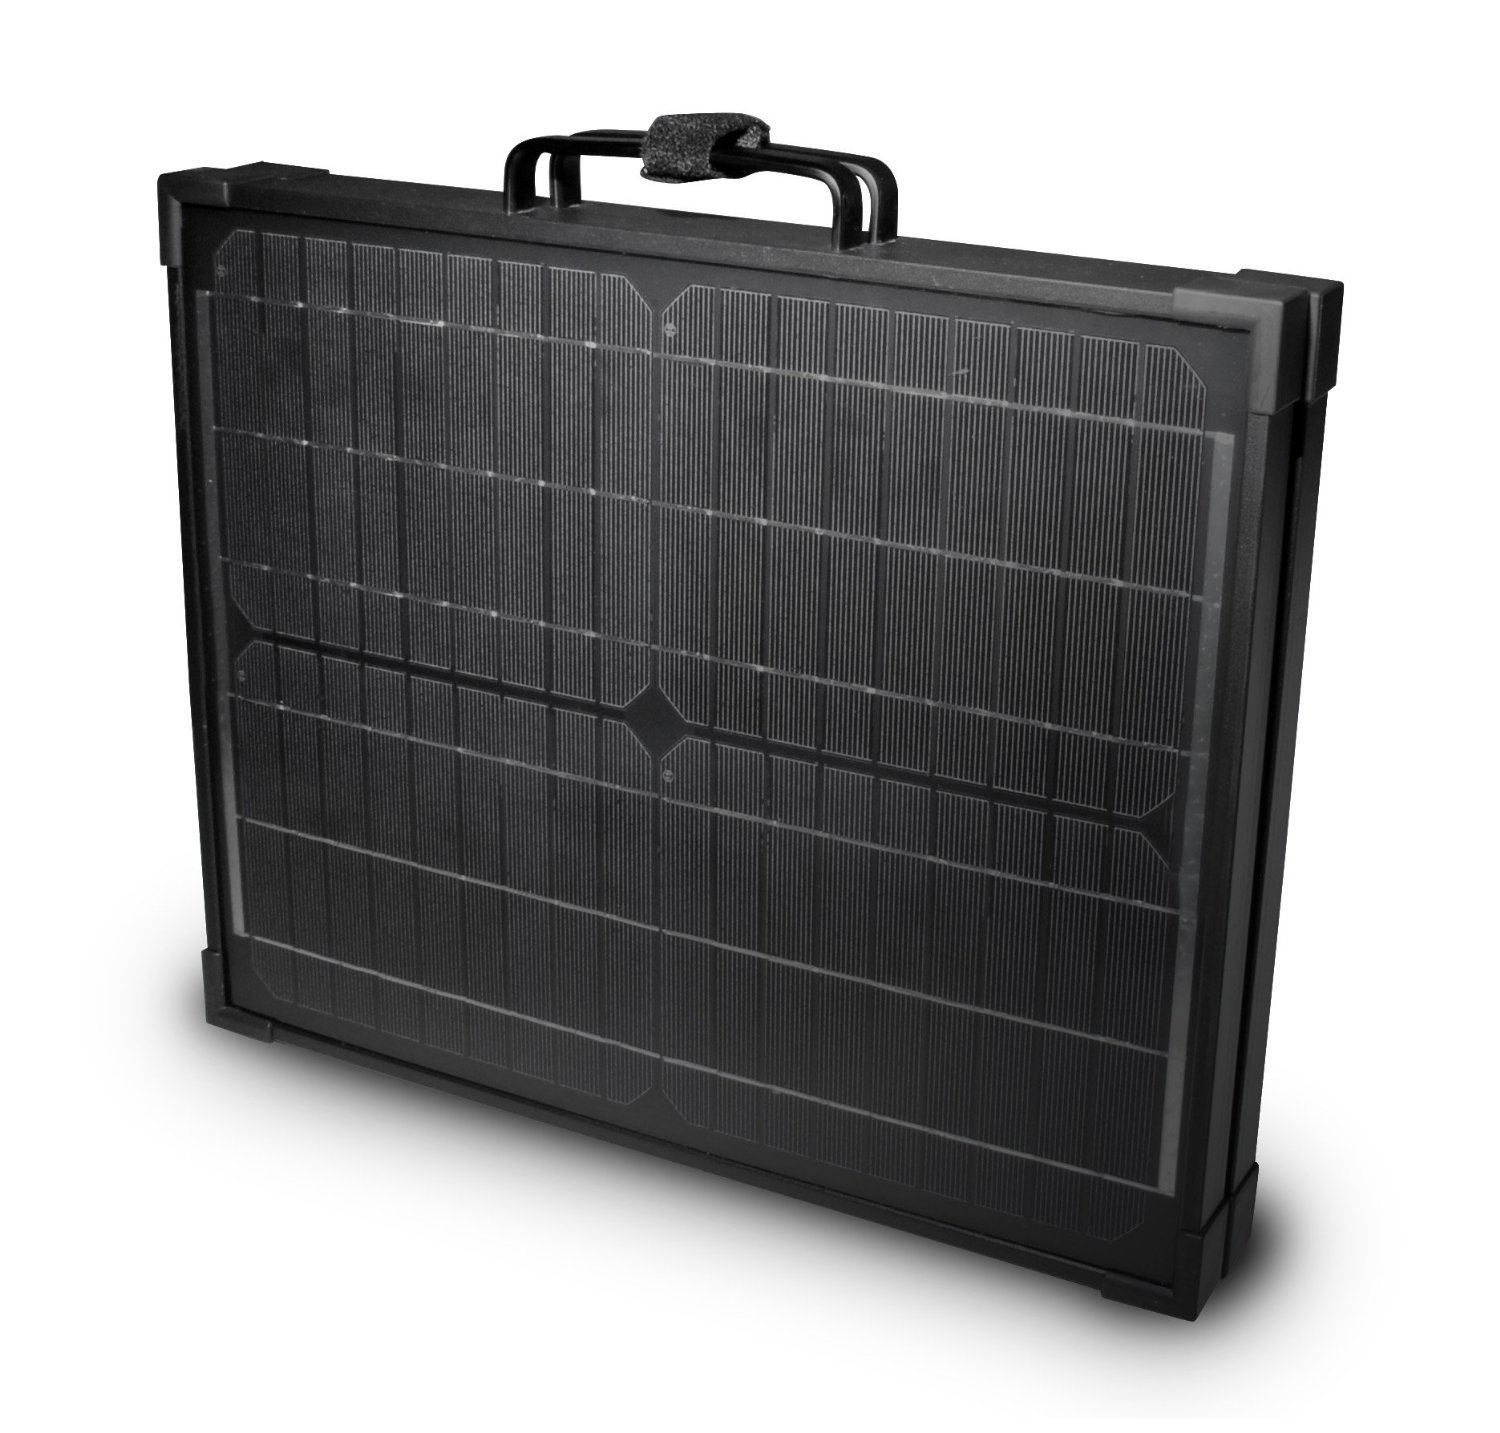 Nature Power Solar Panel In a Briefcase